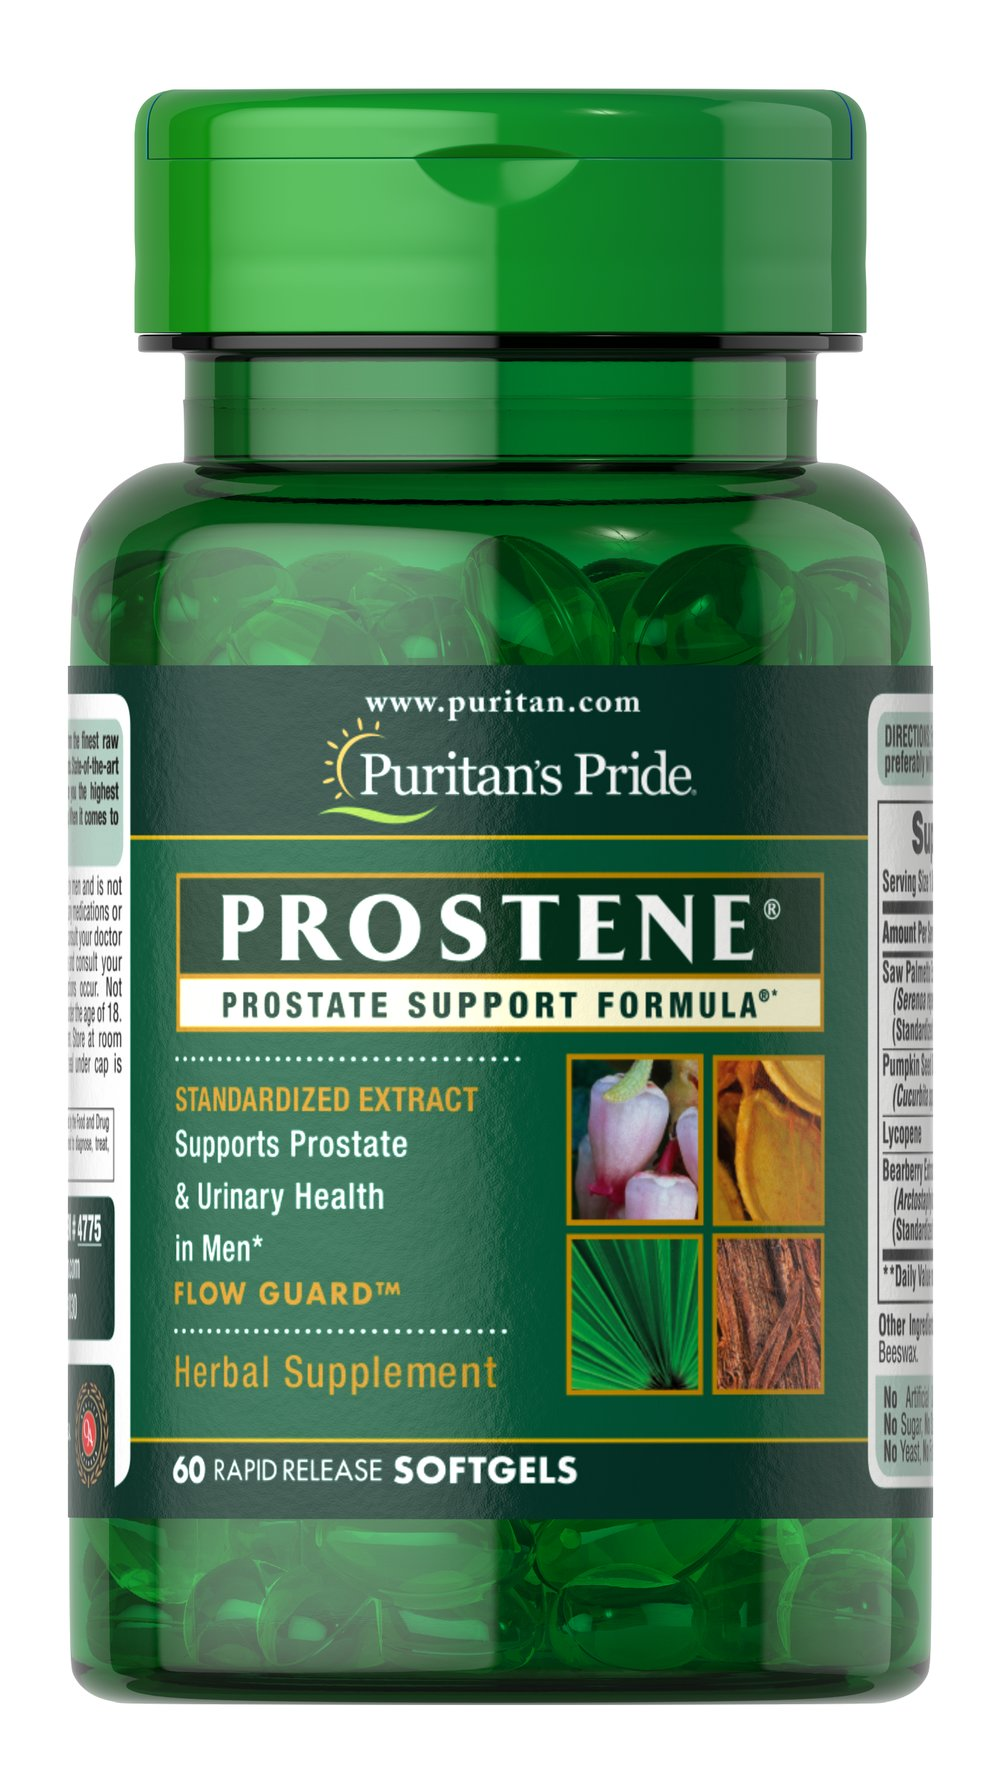 Prostene® Prostate Support Formula® Thumbnail Alternate Bottle View